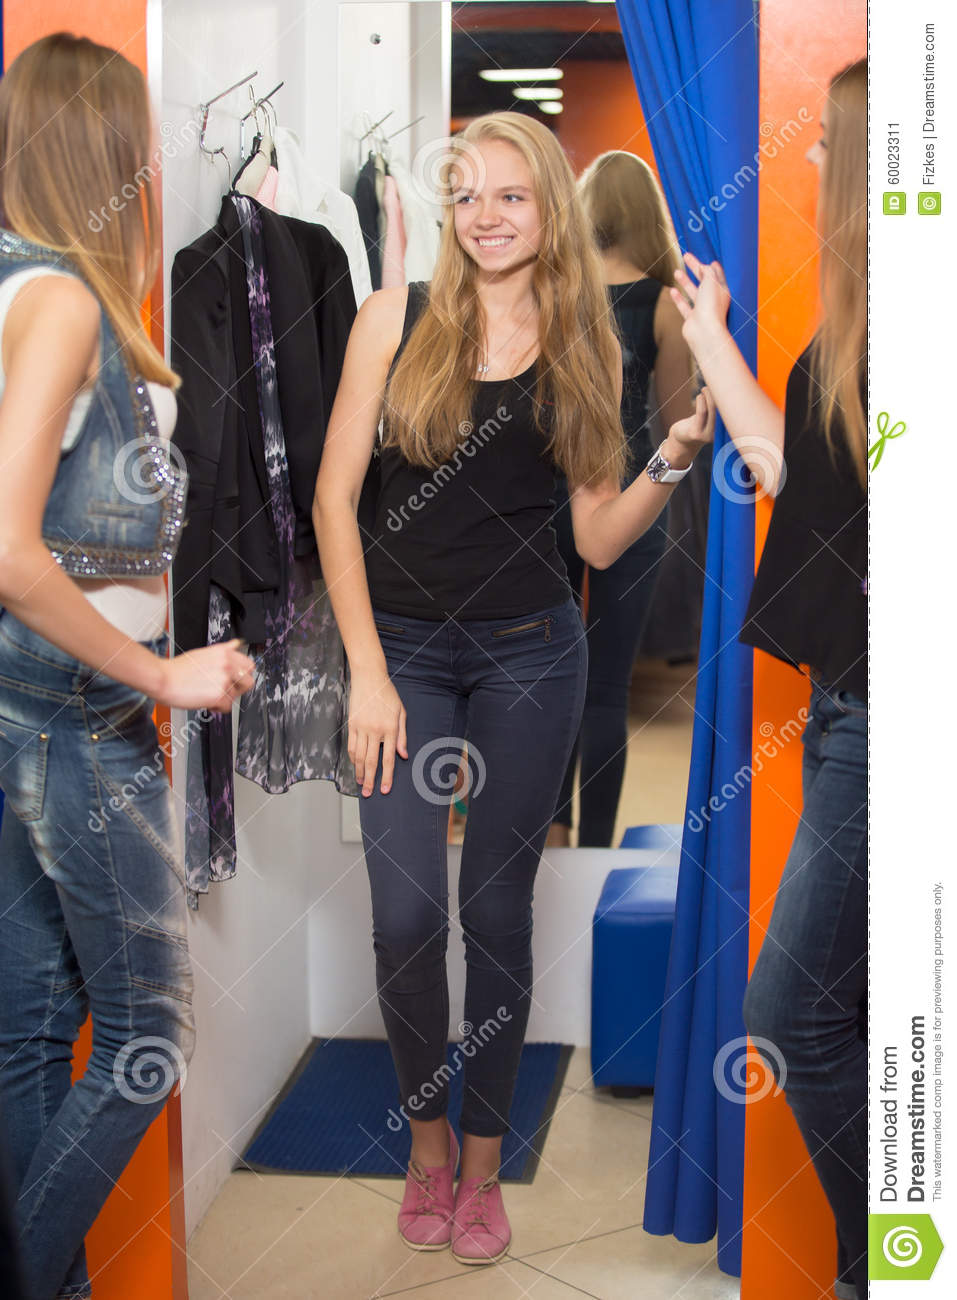 Trying Clothes In Fashion Store Stock Image Image Of Lifestyle Female 60023311